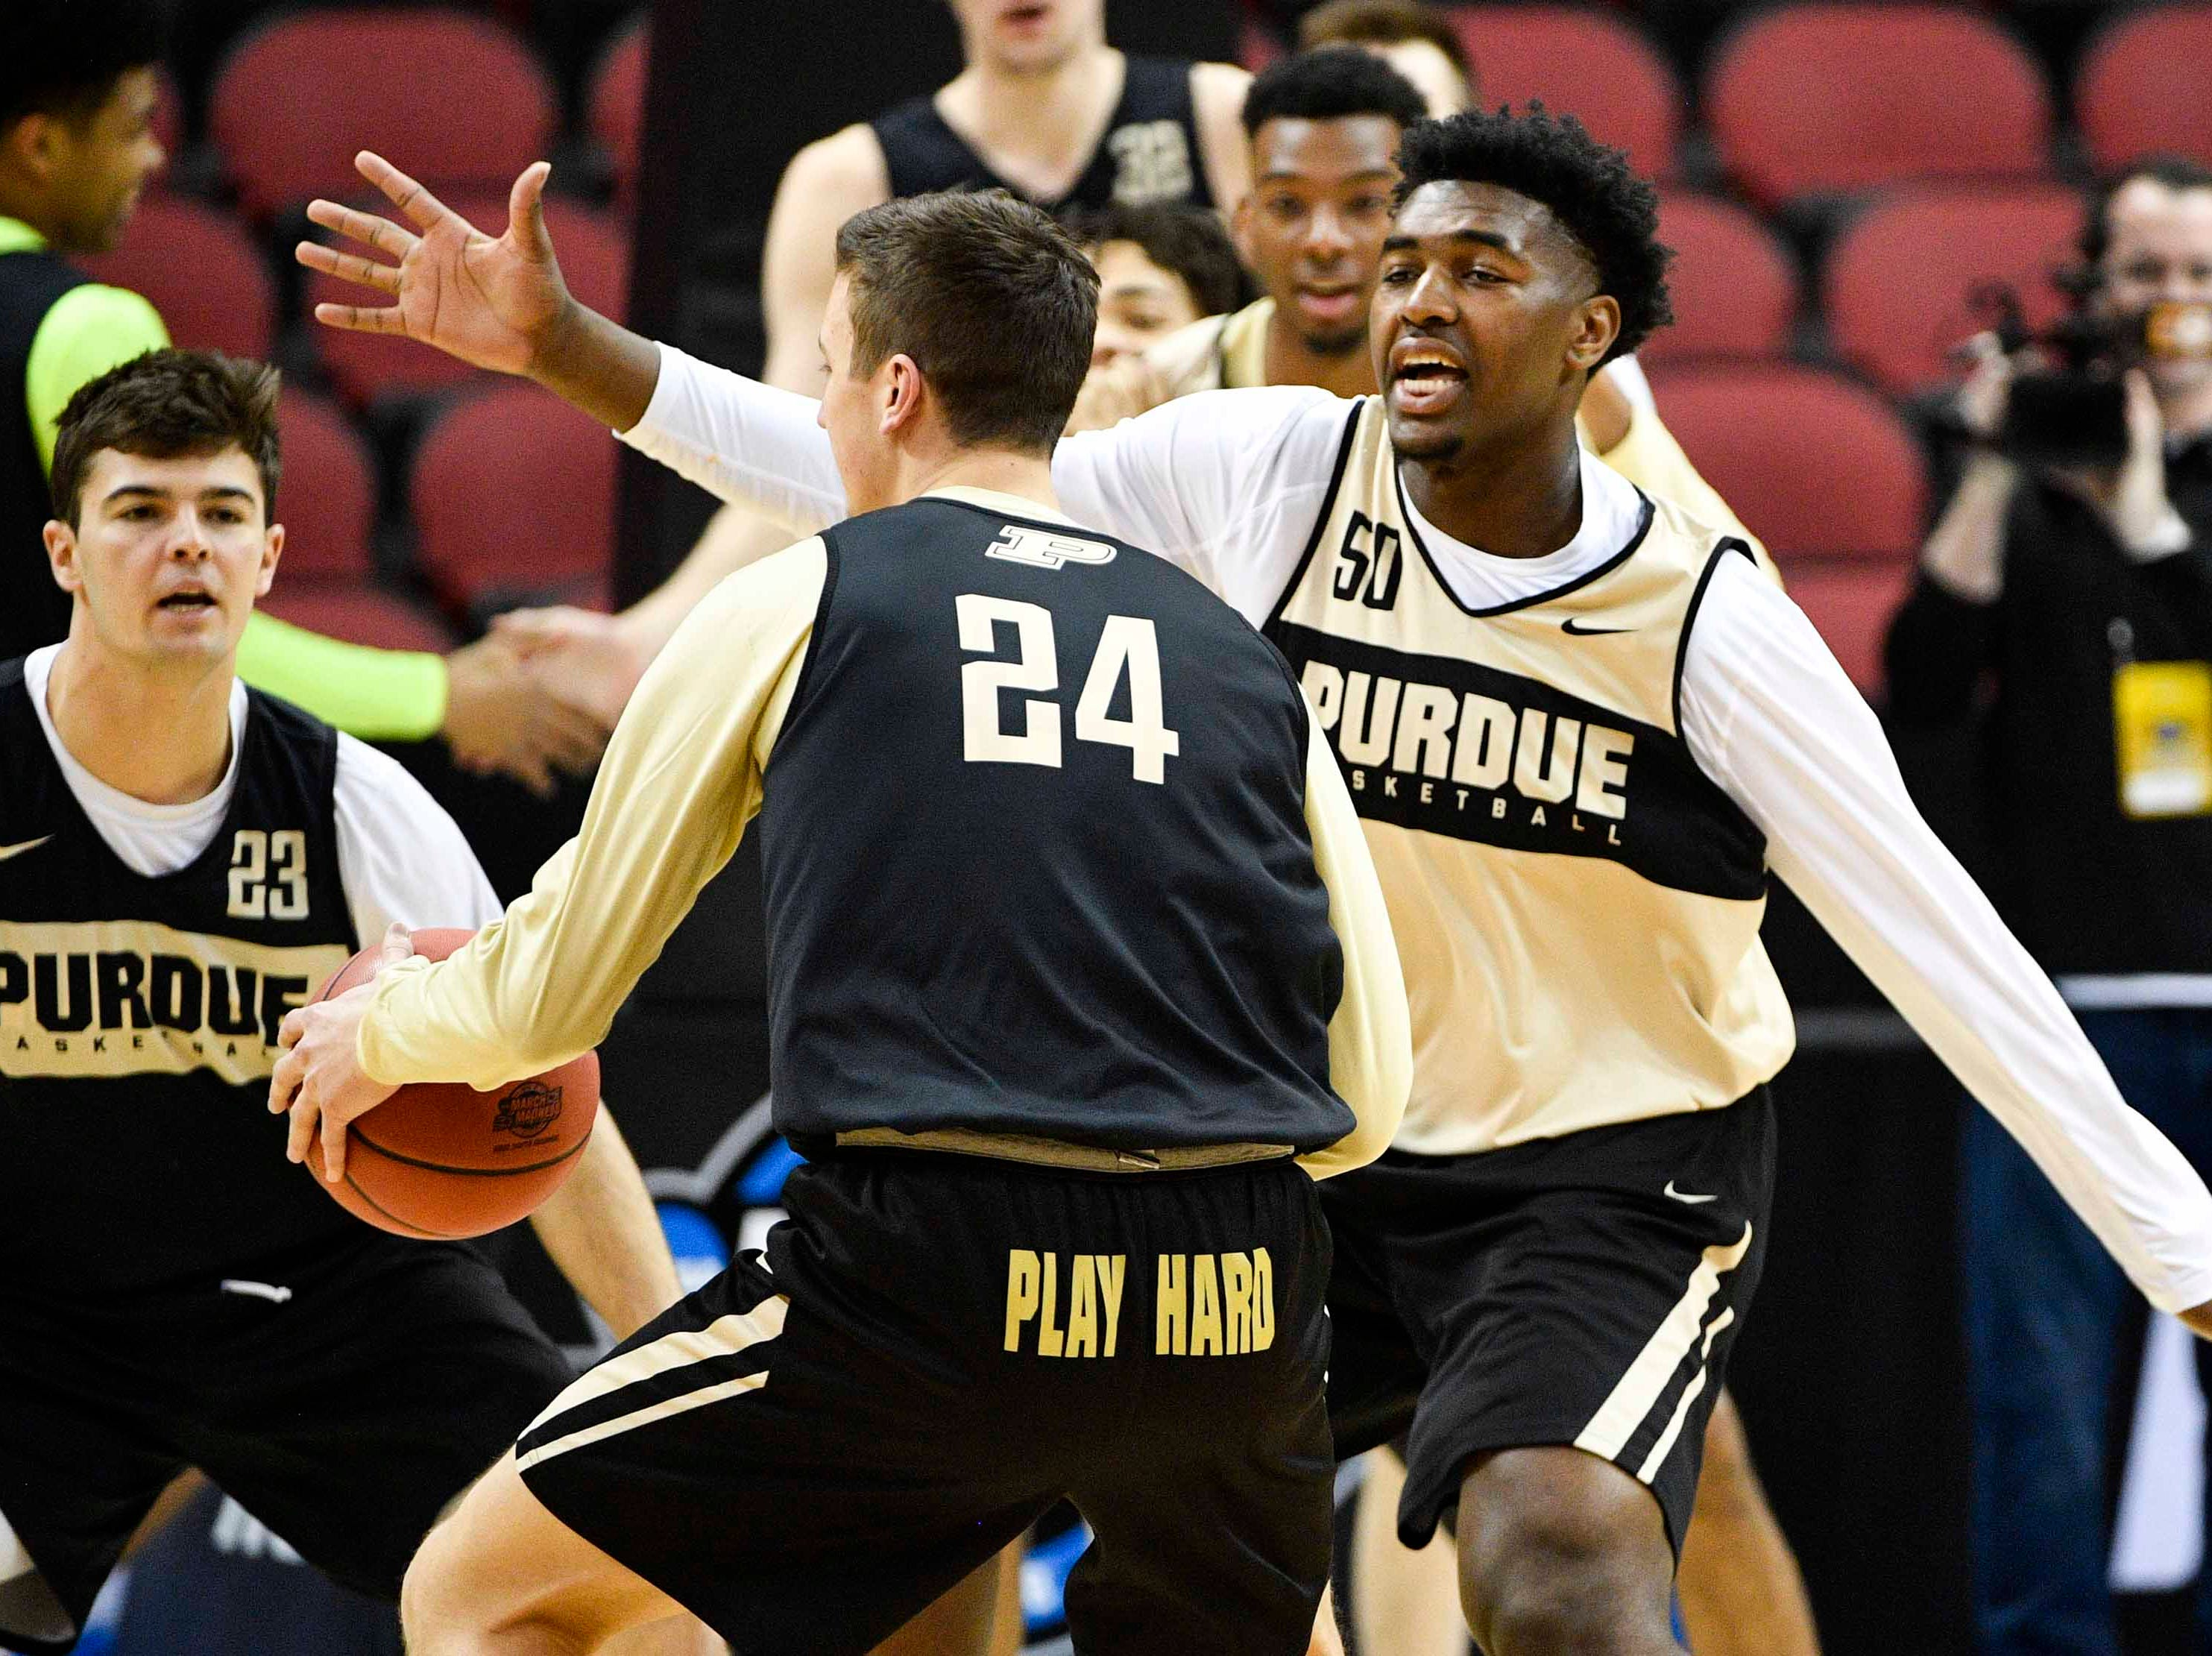 Mar 27, 2019; Louisville, KY, United States; Purdue Boilermakers forward Trevion Williams (50) guards forward Grady Eifert (24) during the Purdue Boilermakers practice for the south regional of the 2019 NCAA Tournament at KFC Yum Center. Mandatory Credit: Jamie Rhodes-USA TODAY Sports